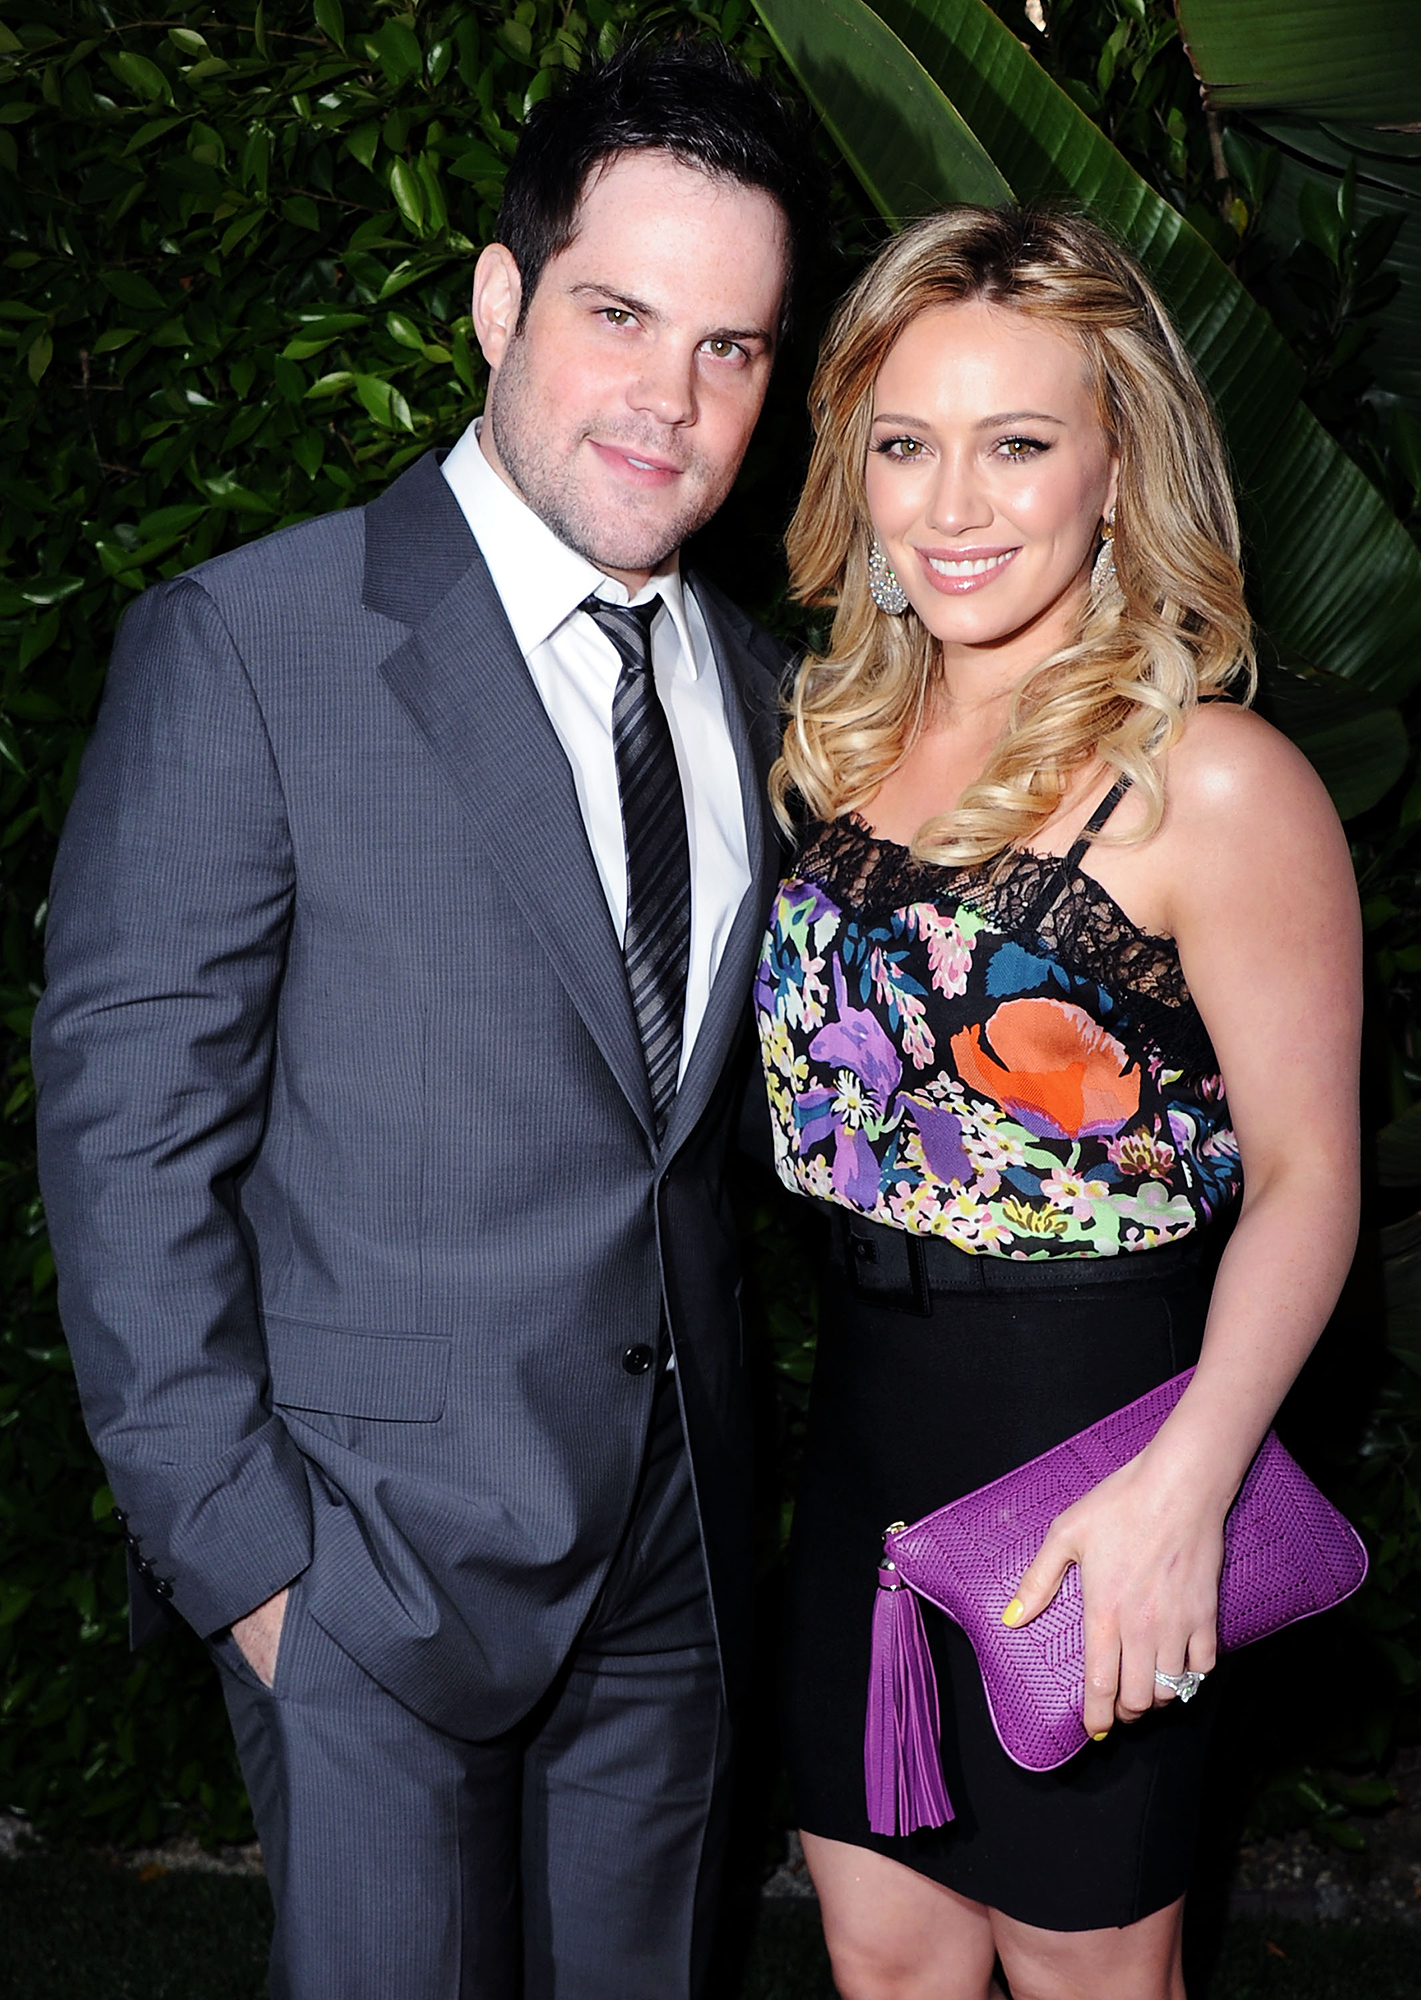 """Hilary Duff Through The Years Mike Comrie - """"We are extremely happy and ready to start this new chapter of our lives,"""" Duff wrote on her website in Aug. 2011."""